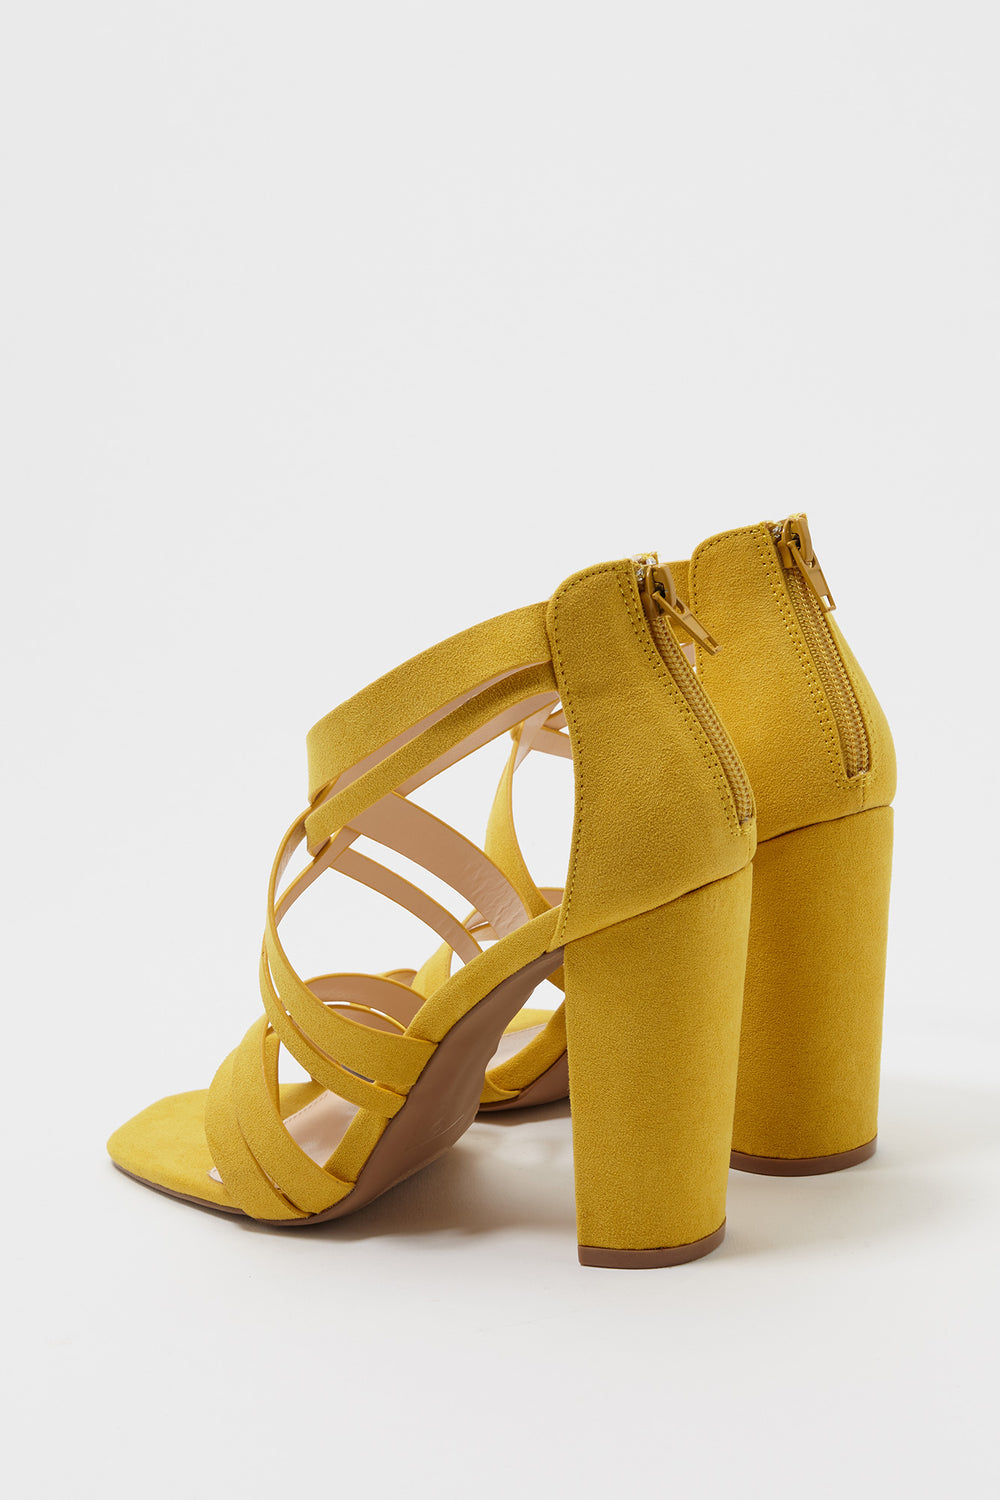 Cross Toe Strap Faux-Suede Block Heel Sandal Yellow